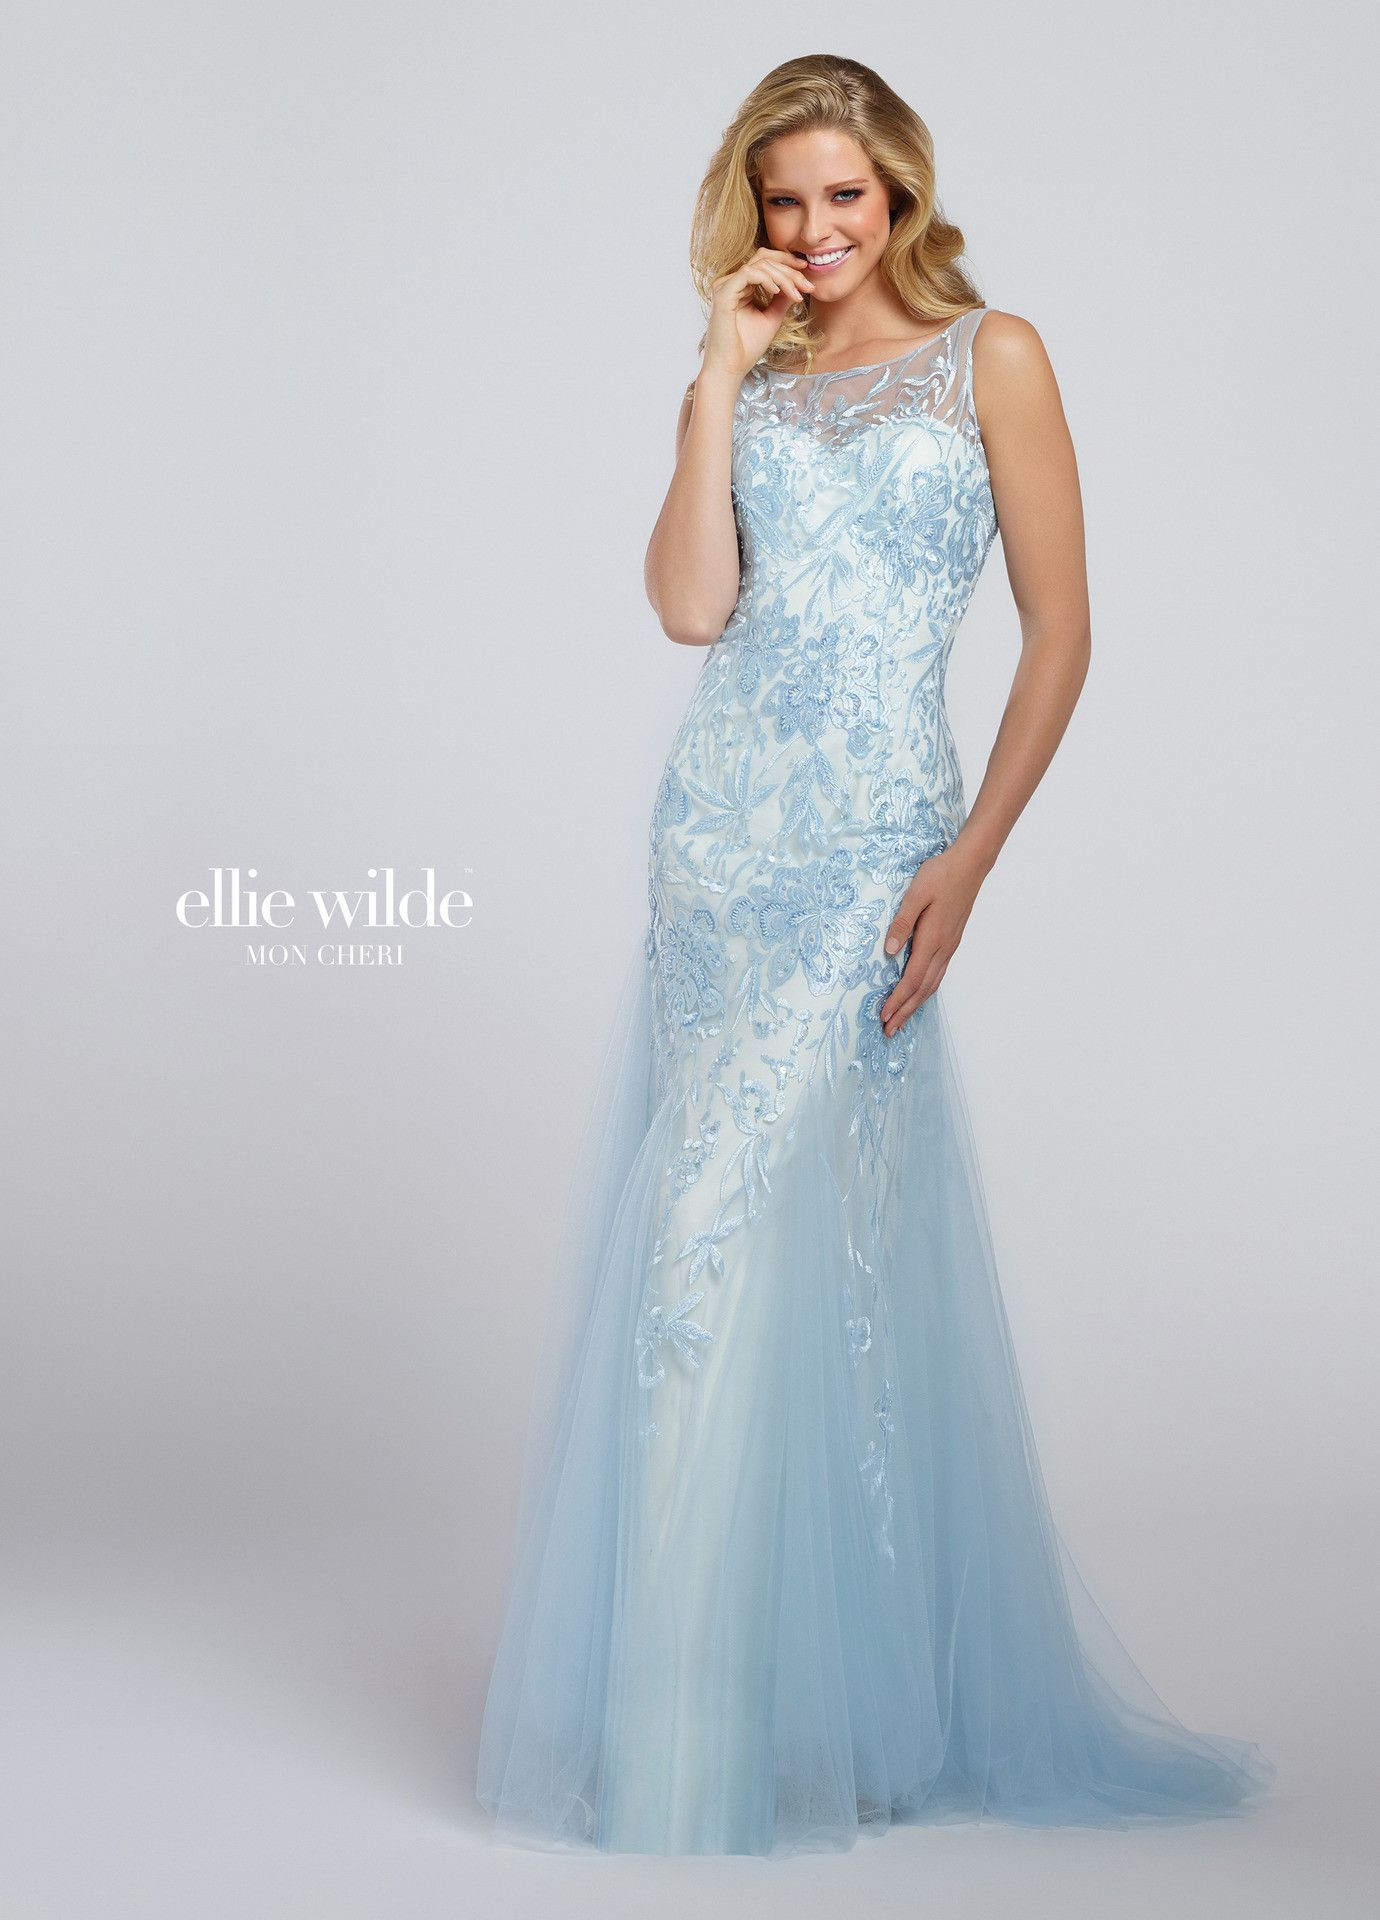 Ellie wilde ice blue illusion neck embroidered prom dress